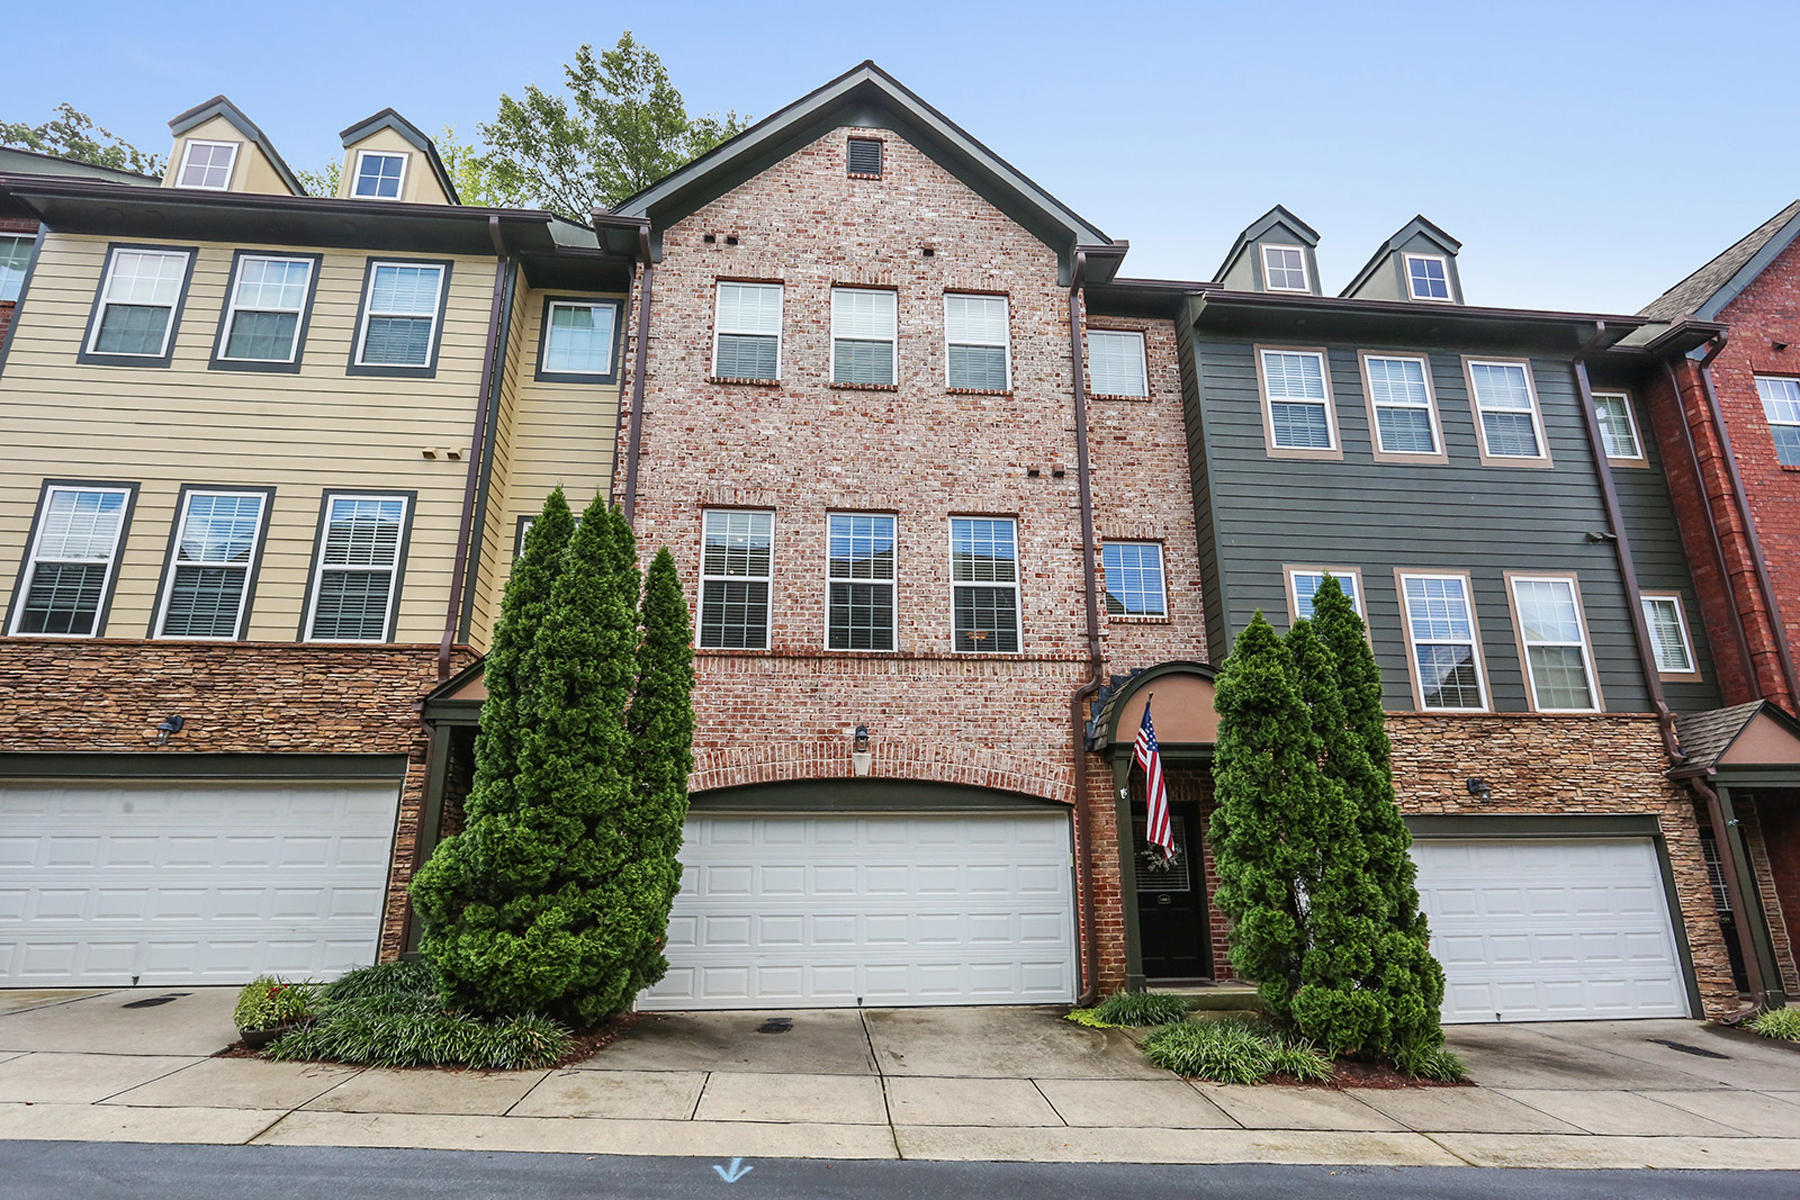 Townhouse for Rent at Immaculate Updated Two Bedroom Townhome 1441 Ashford Creek Circle Atlanta, Georgia 30319 United States